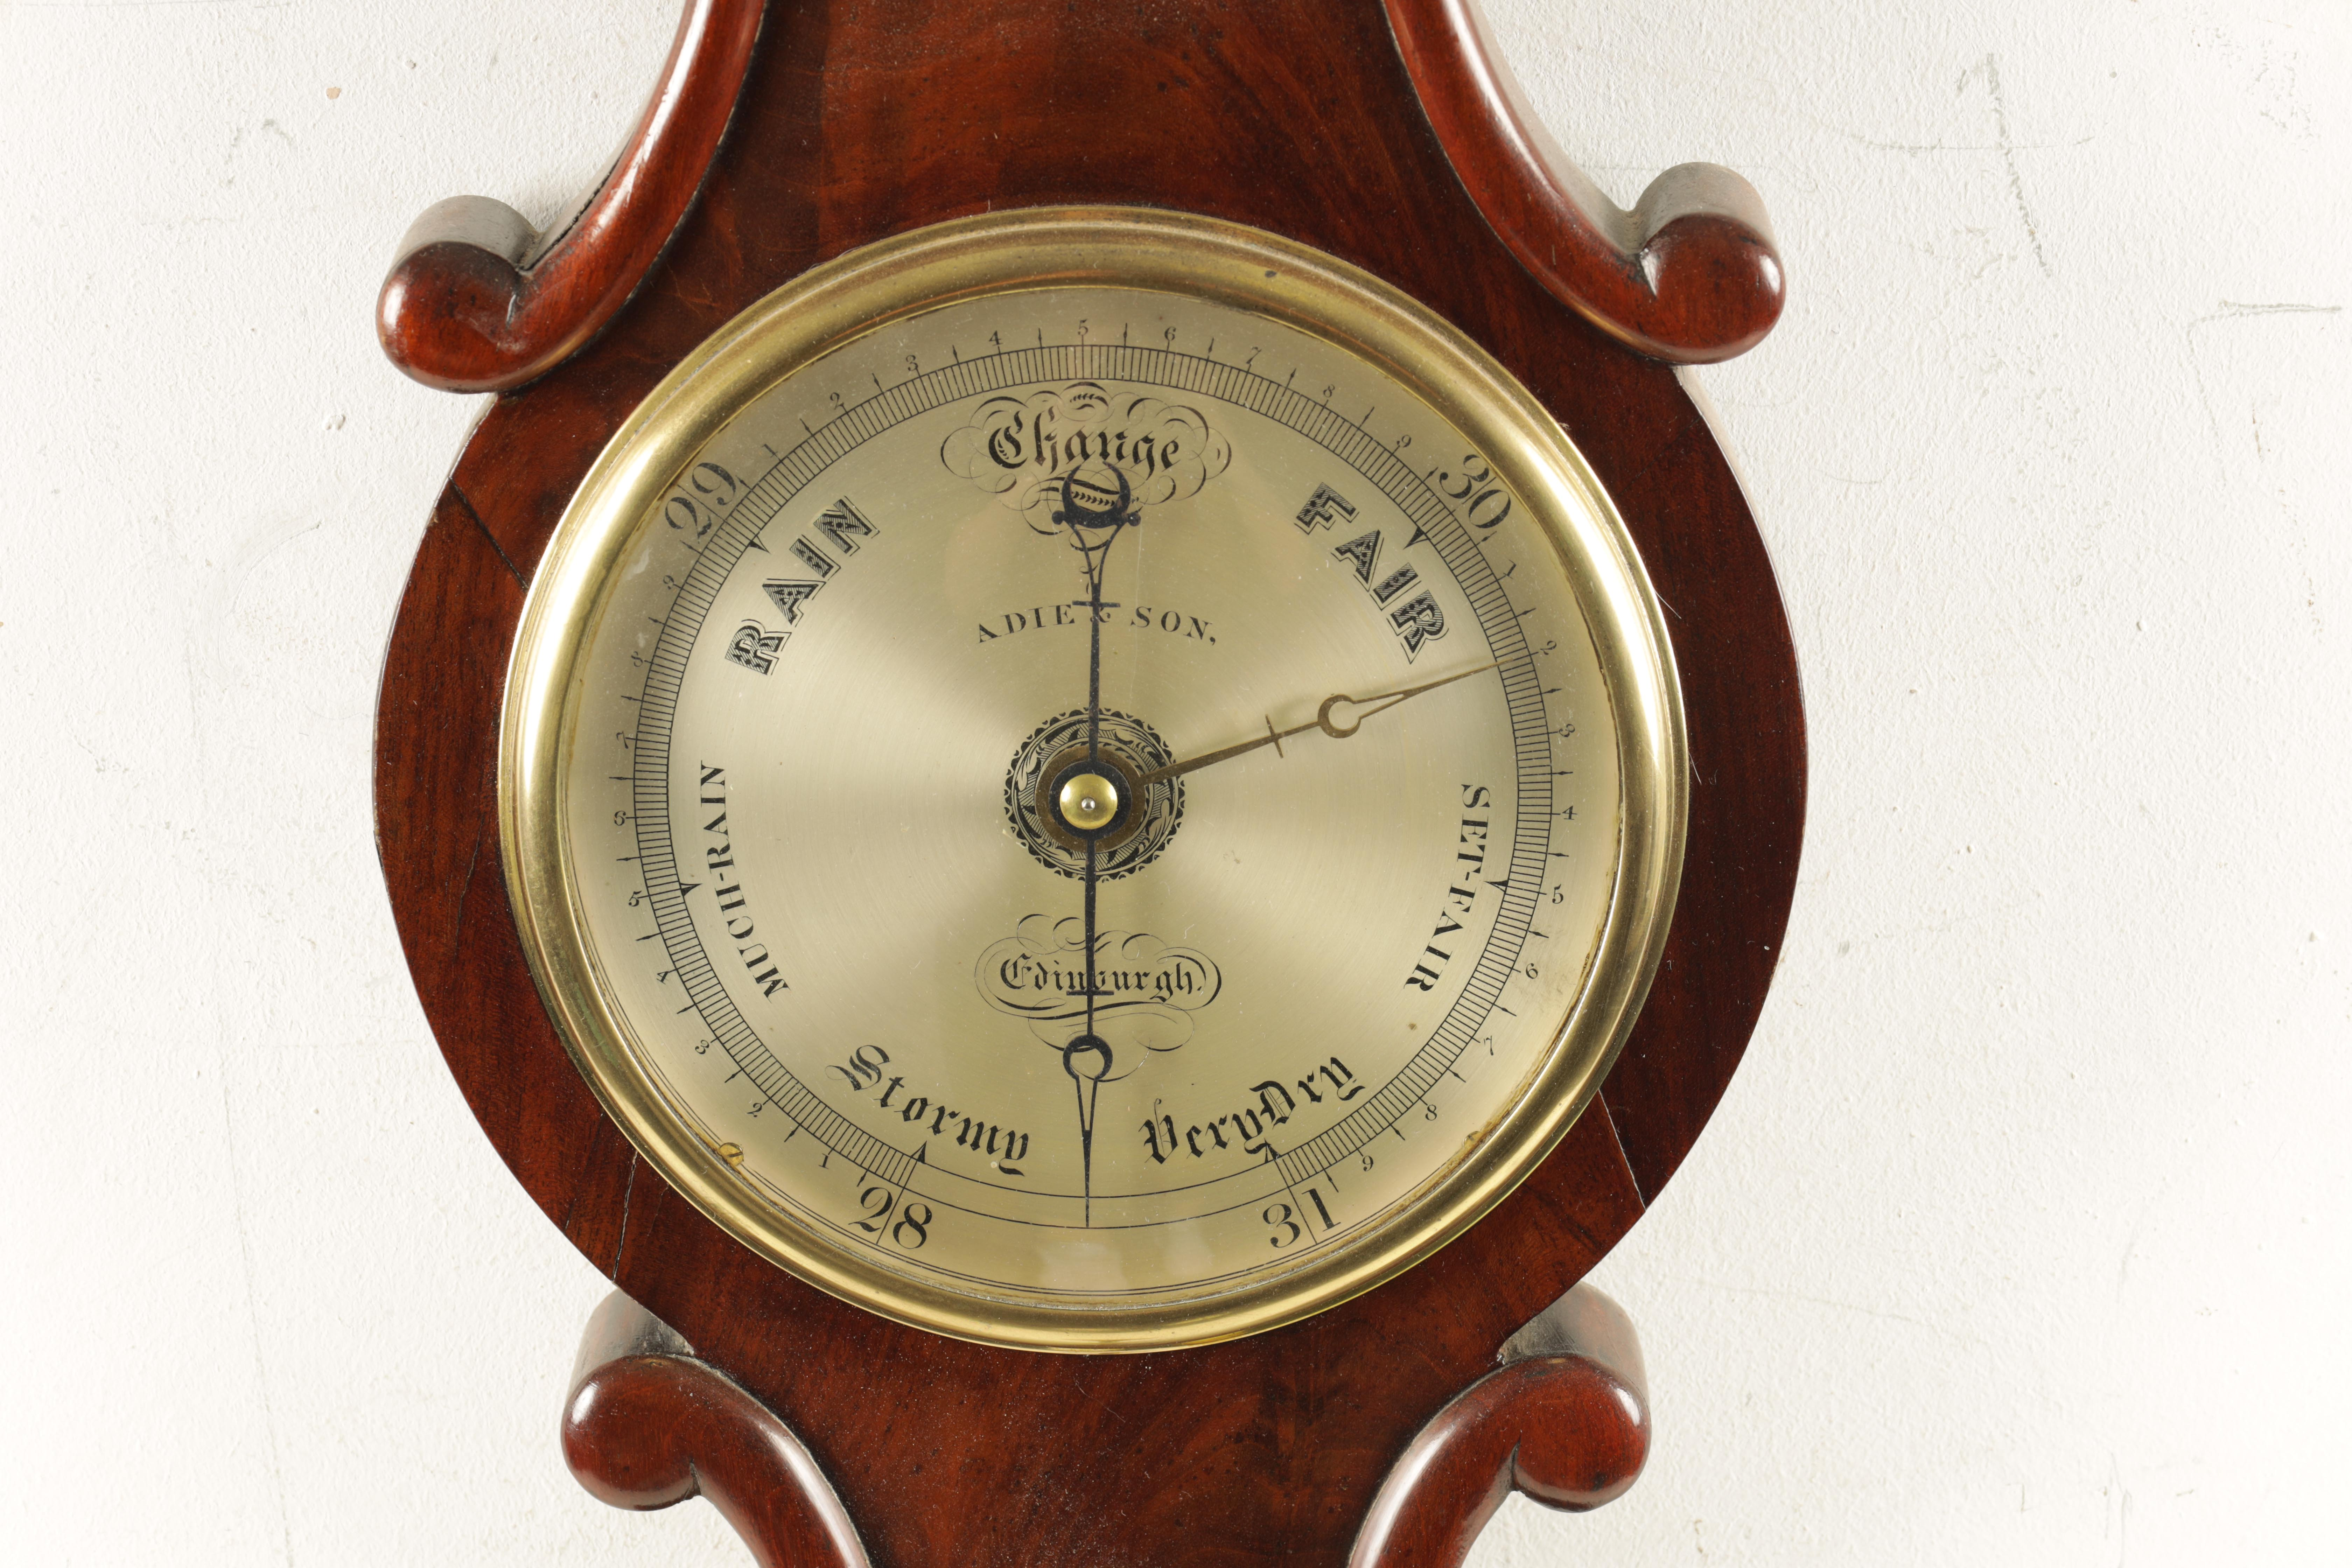 """ADIE AND SON. EDINBURGH A SMALL 19TH CENTURY 6"""" DIAL FIGURED MAHOGANY WHEEL BAROMETER the case - Image 2 of 4"""